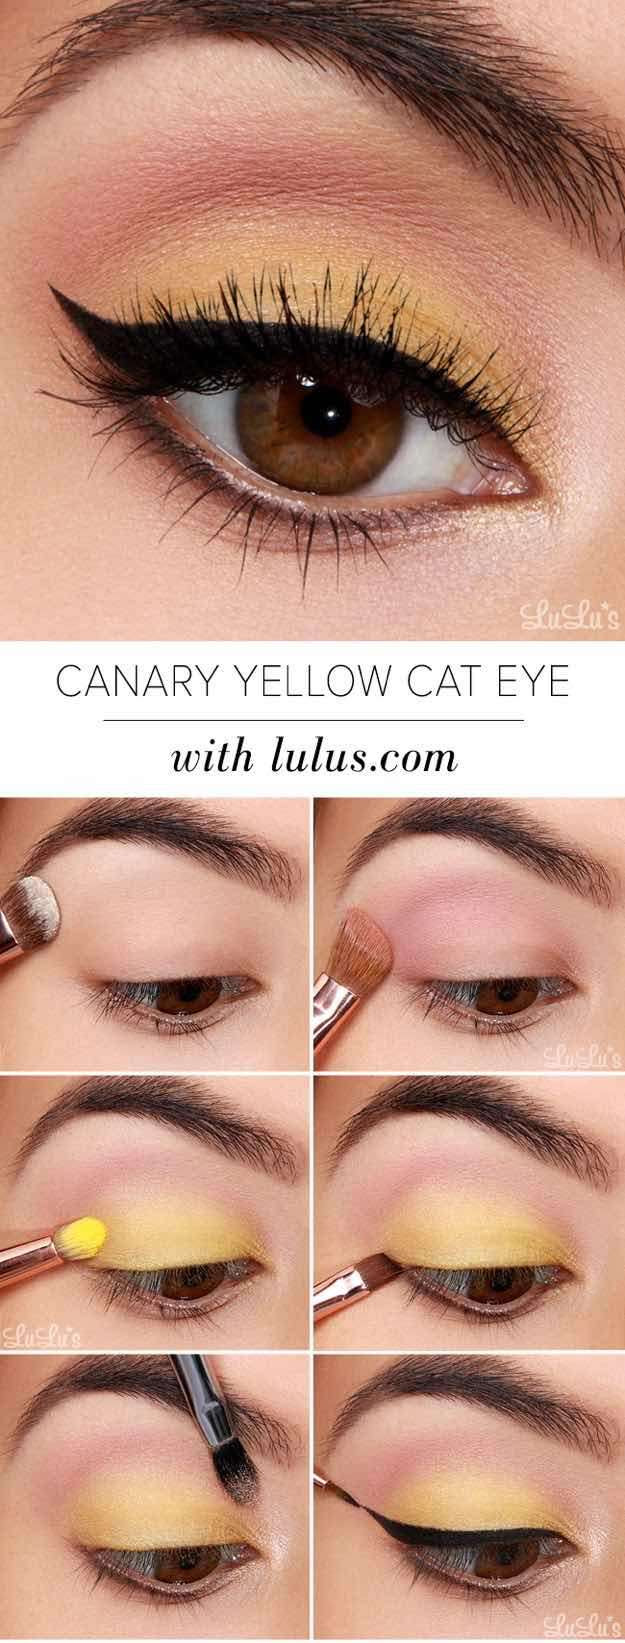 20 Simple Easy Step By Step Eyeshadow Tutorials for ...